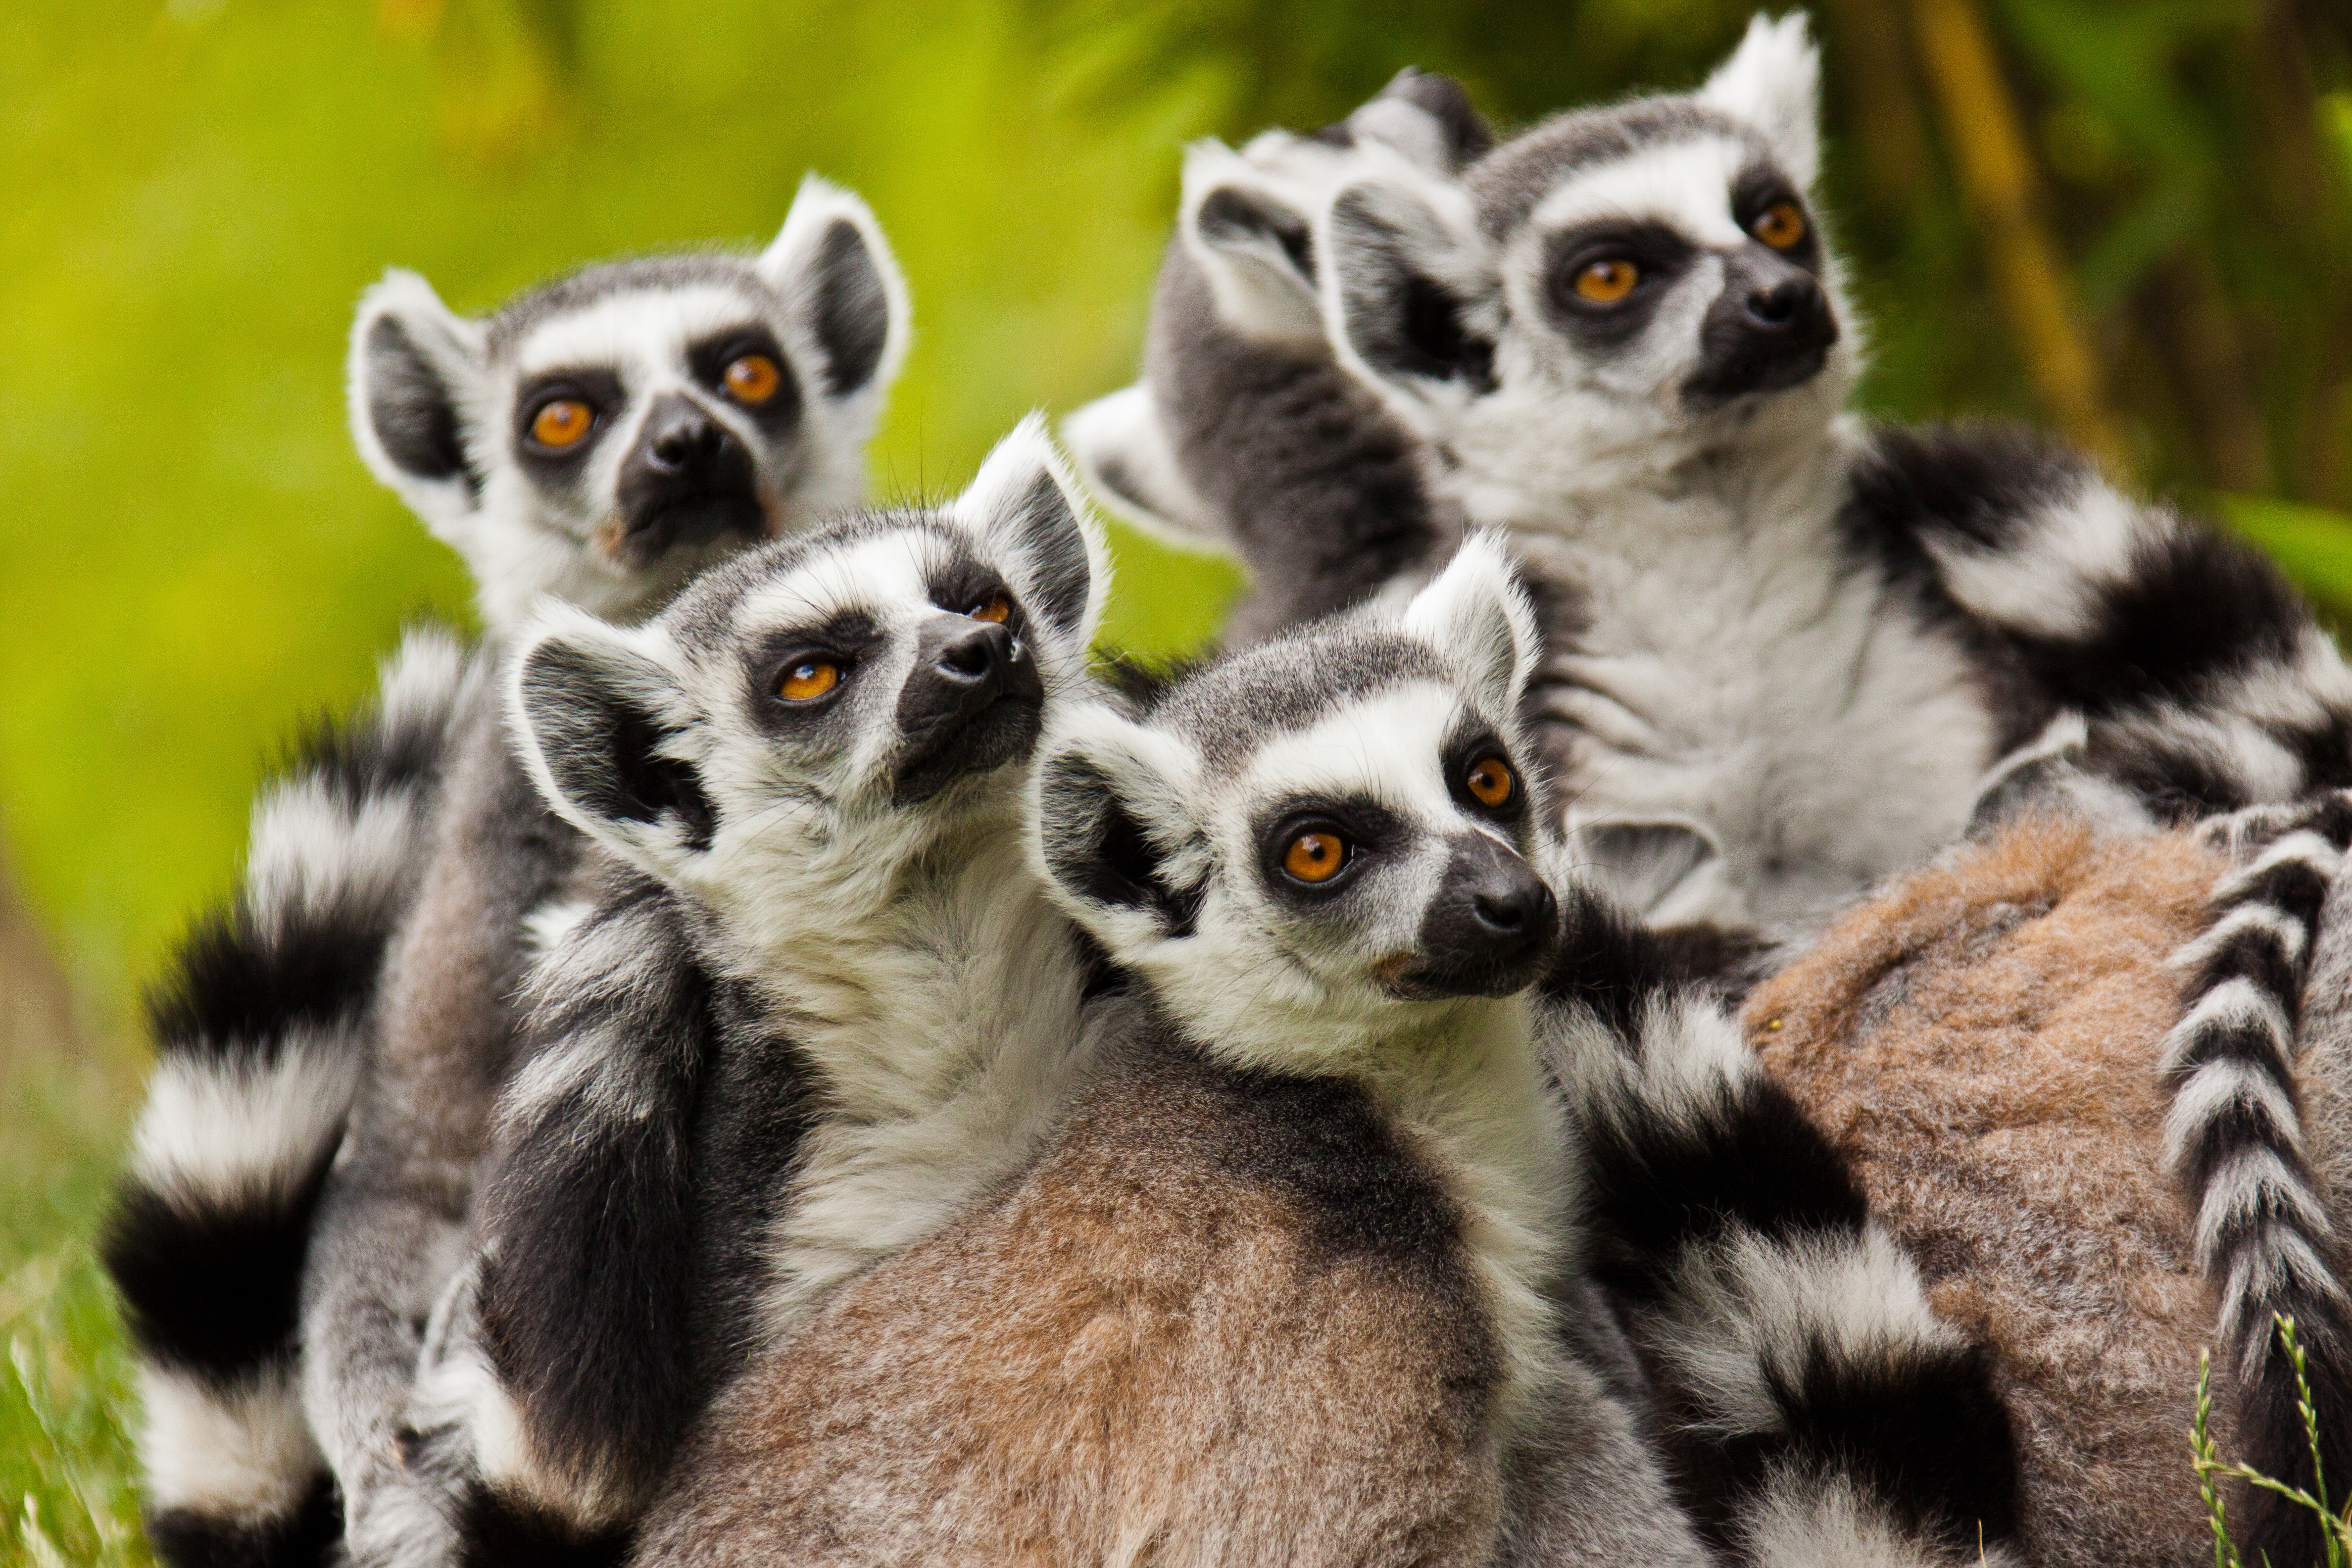 ringtailed lemurs 4k ultra hd wallpaper and background